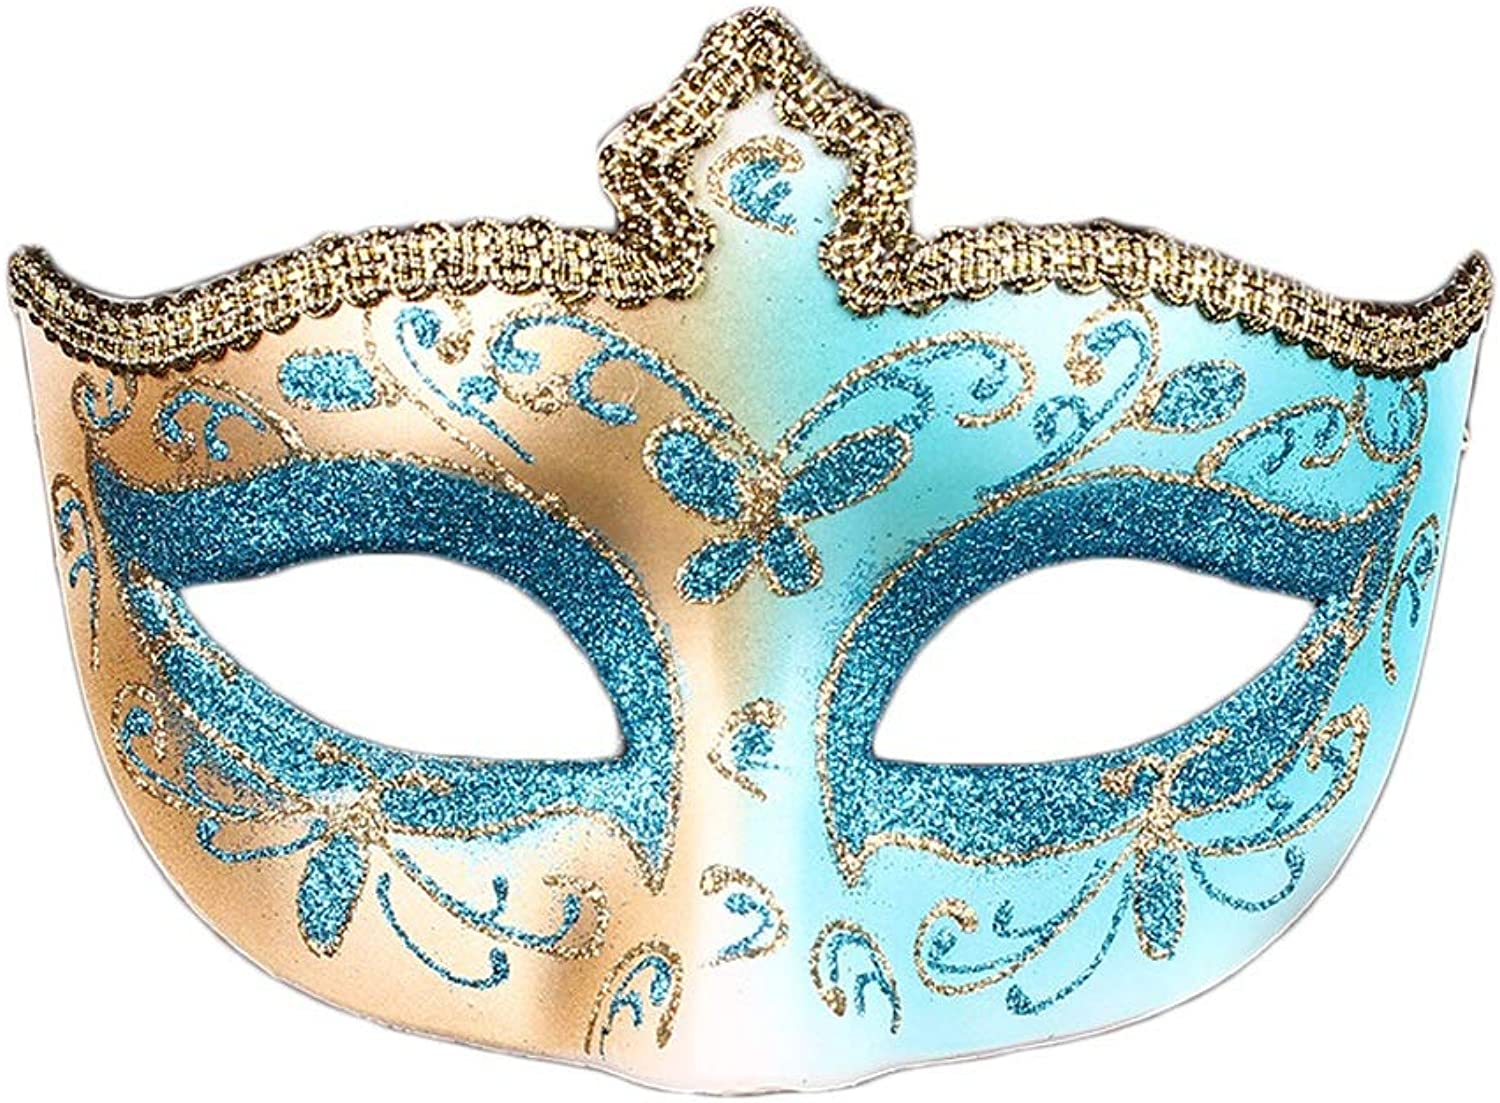 Vfdsvbdv Creative Masquerade Lace Mask Party Beauty Half Face Lady Wearing A Mask ( color   bluee )